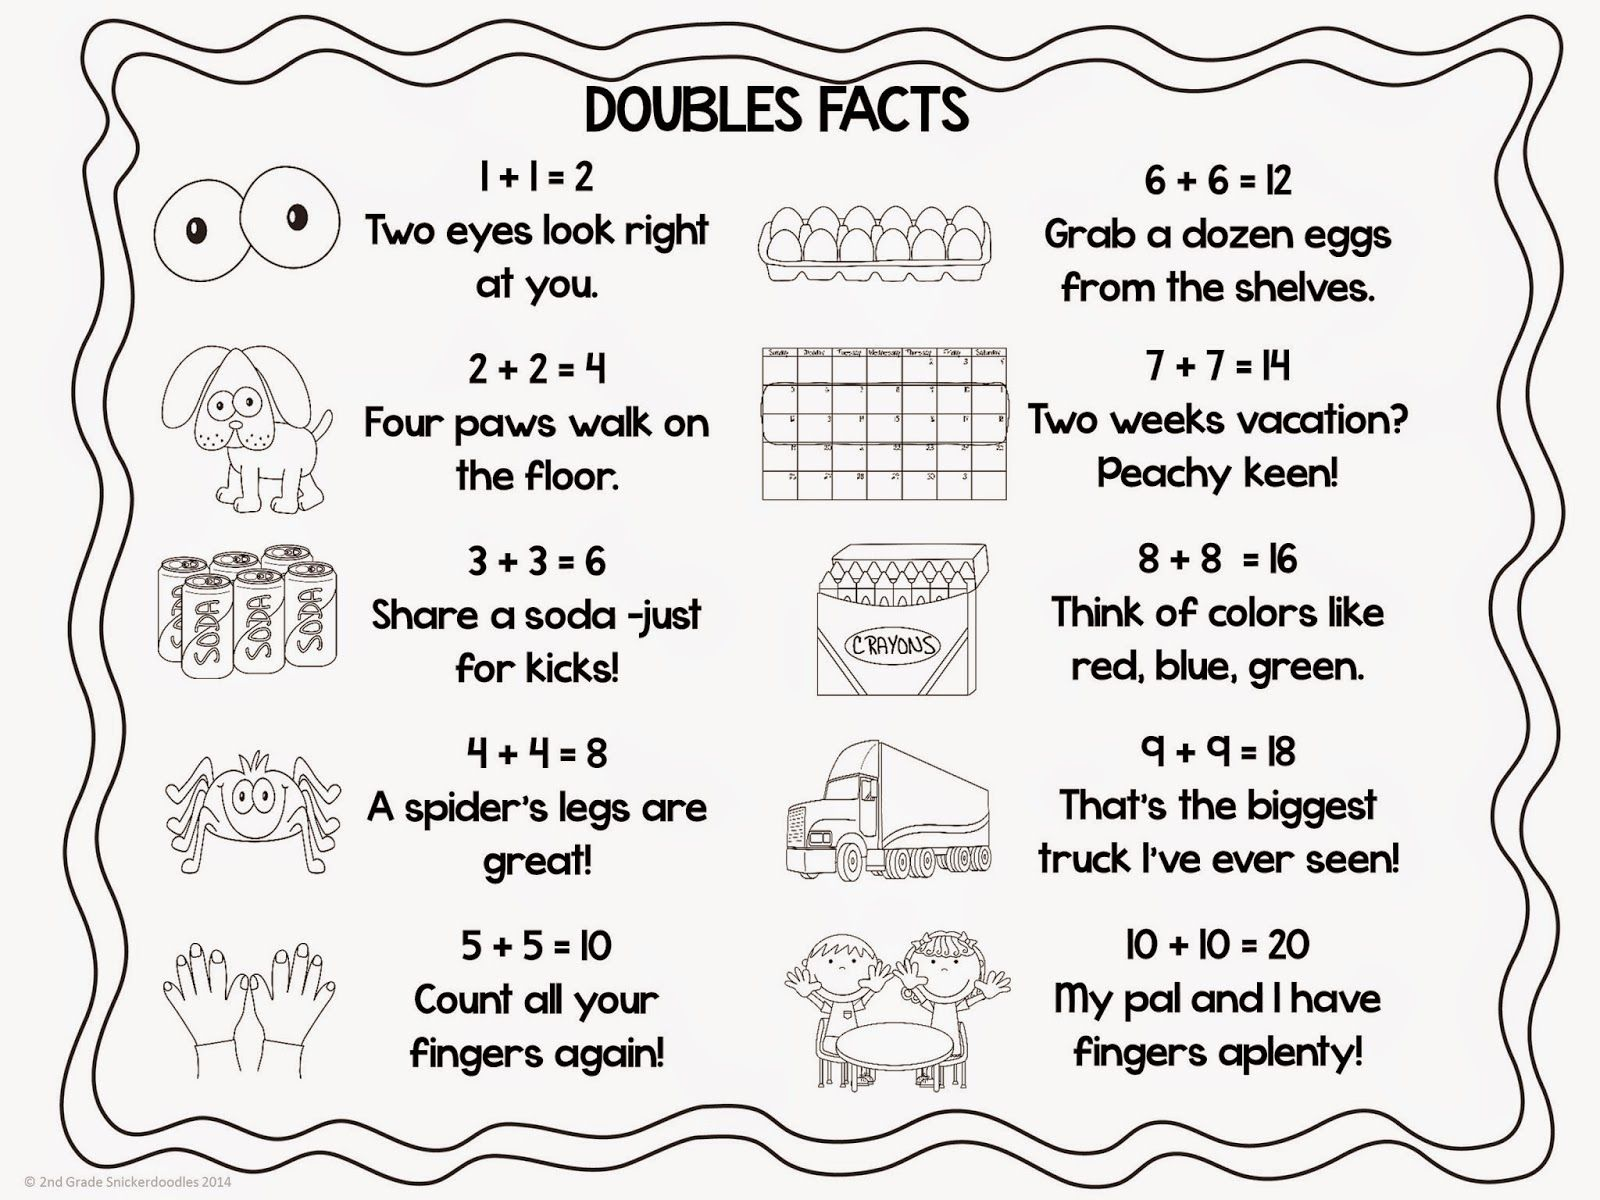 2nd Grade Snickerdoodles Doubles Facts Freebie Home School